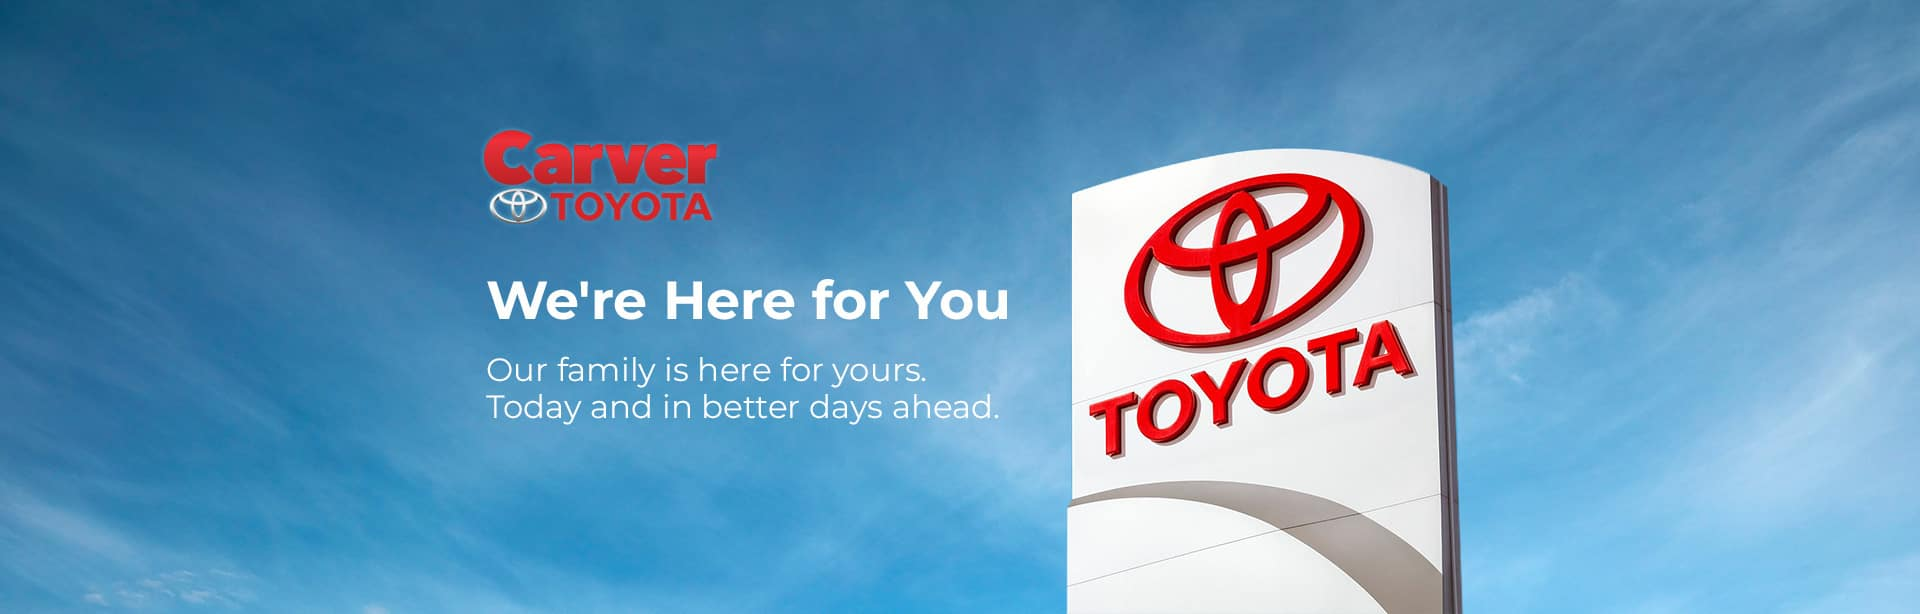 Carver Toyota is here for you.